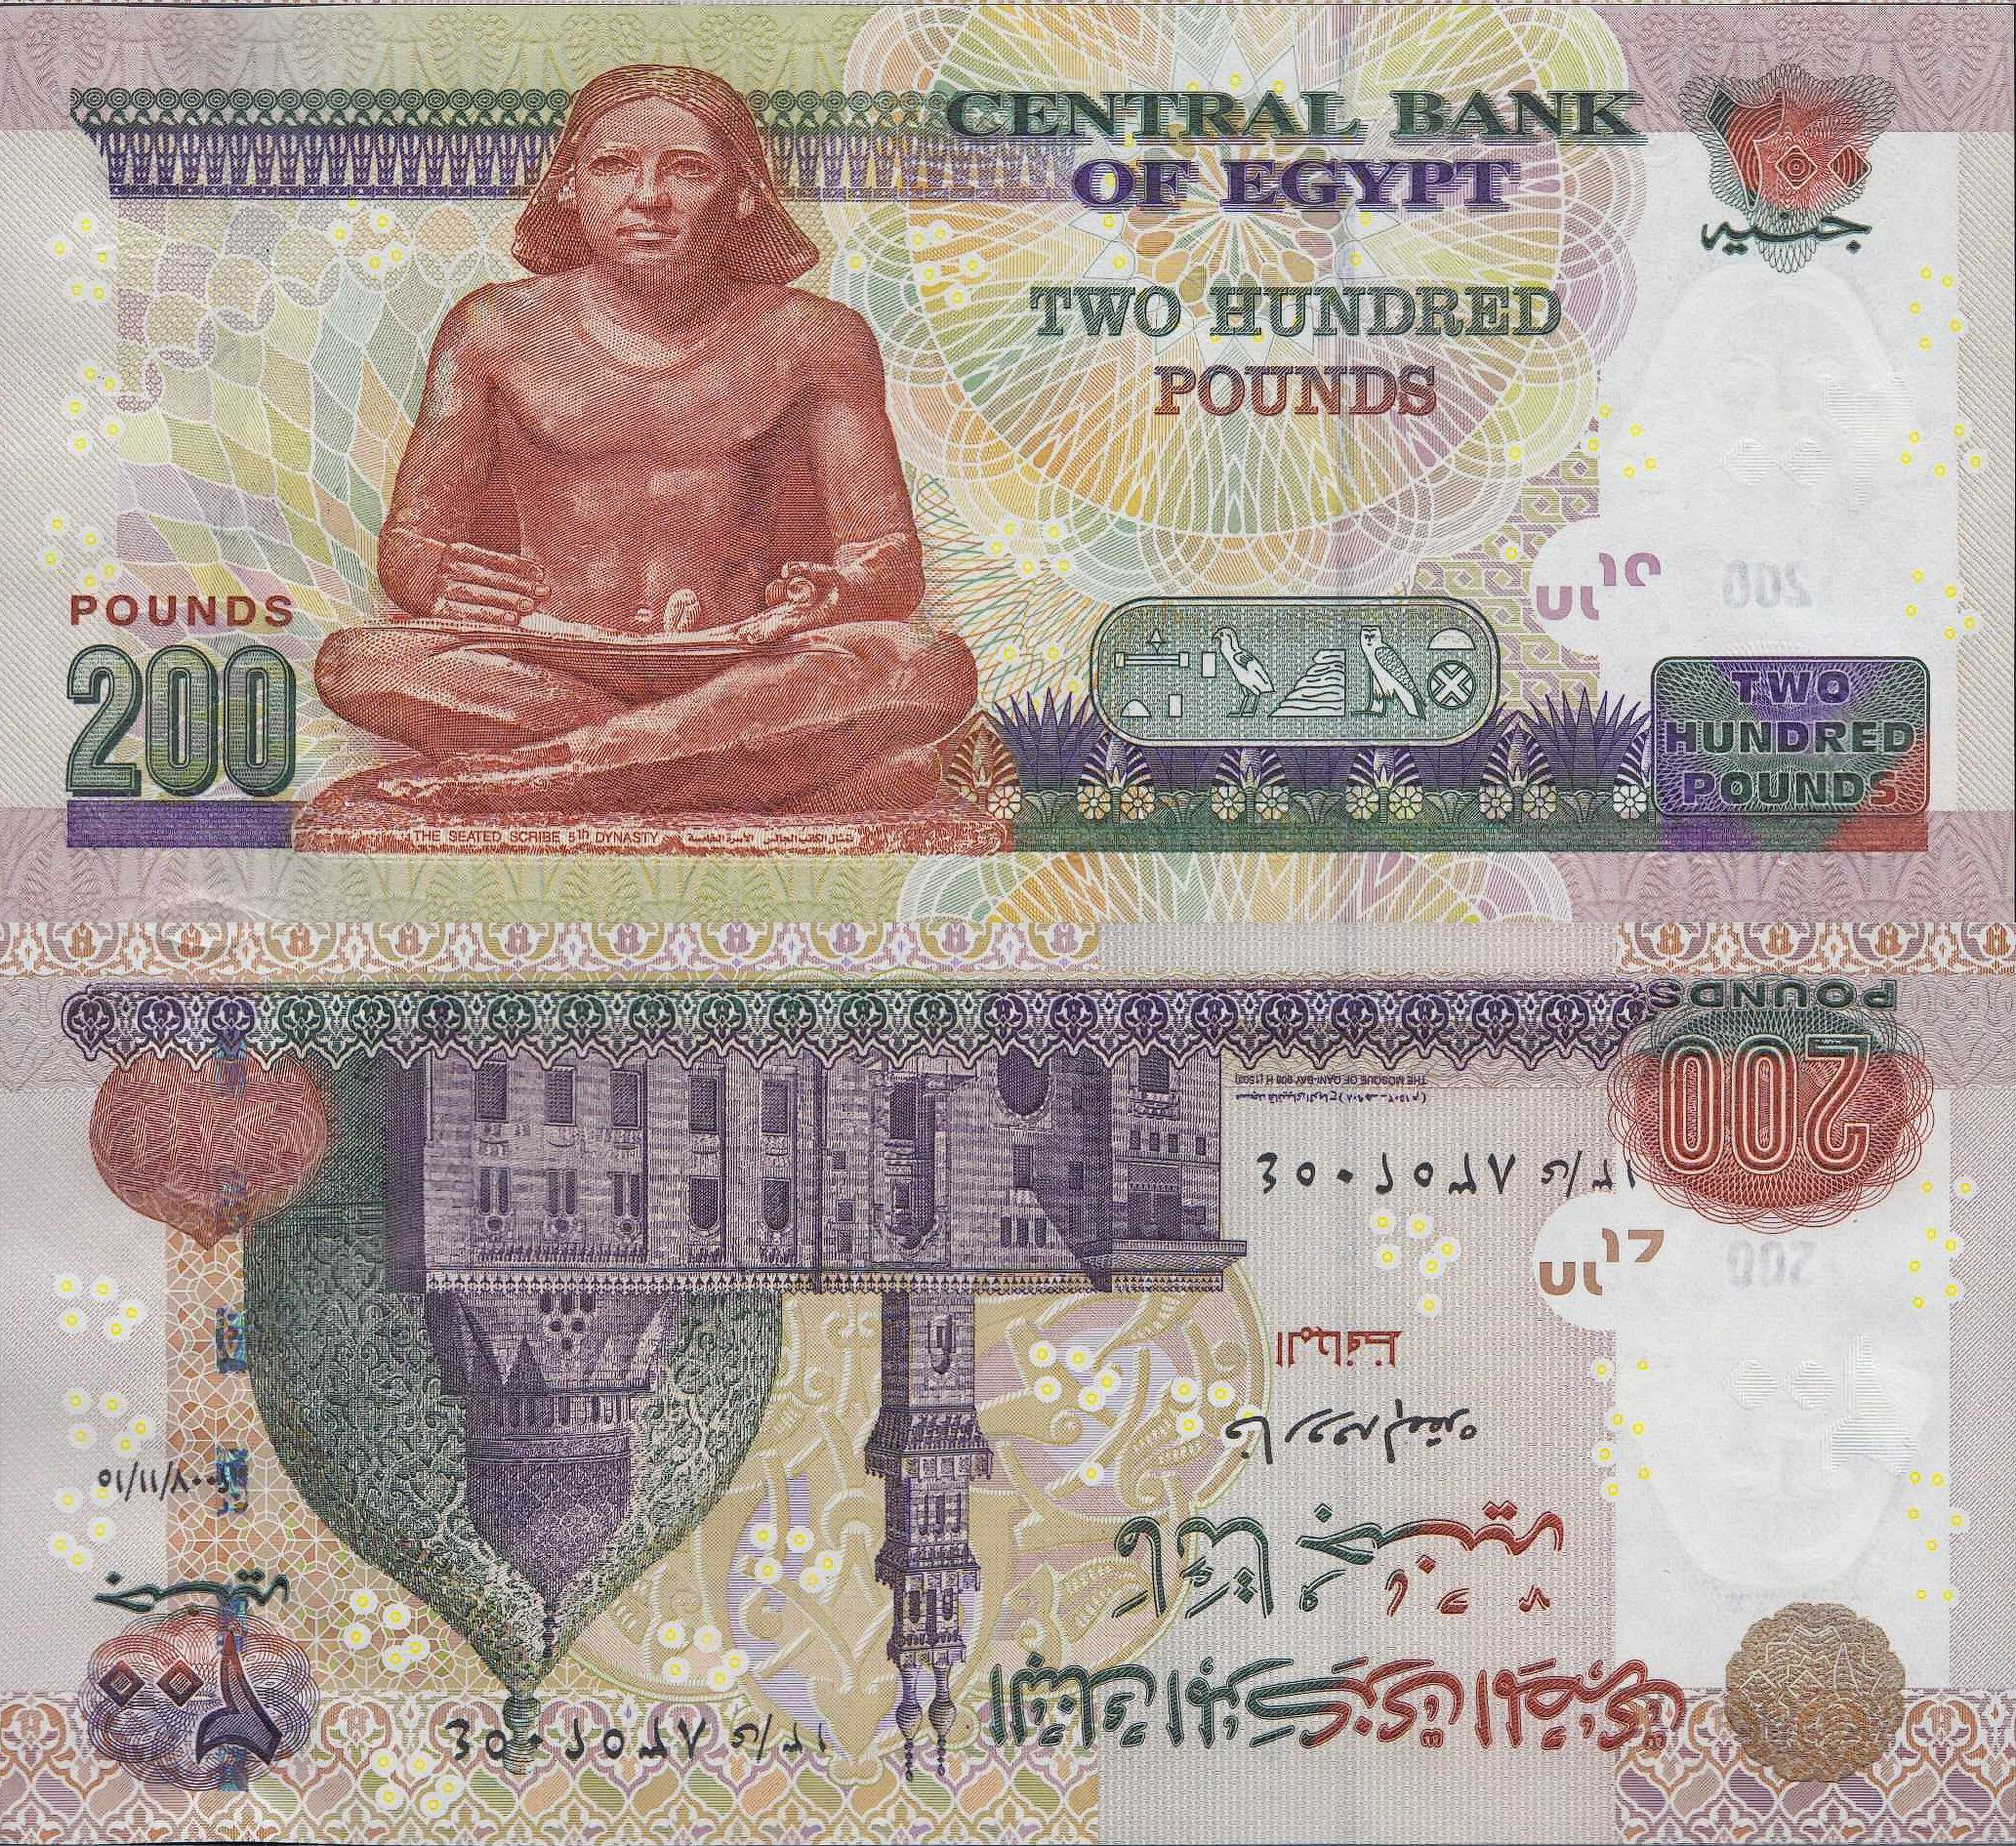 Libras A Pesetas Egipto 200 Libras 2007 Banknote Egypt Currency Money Notes